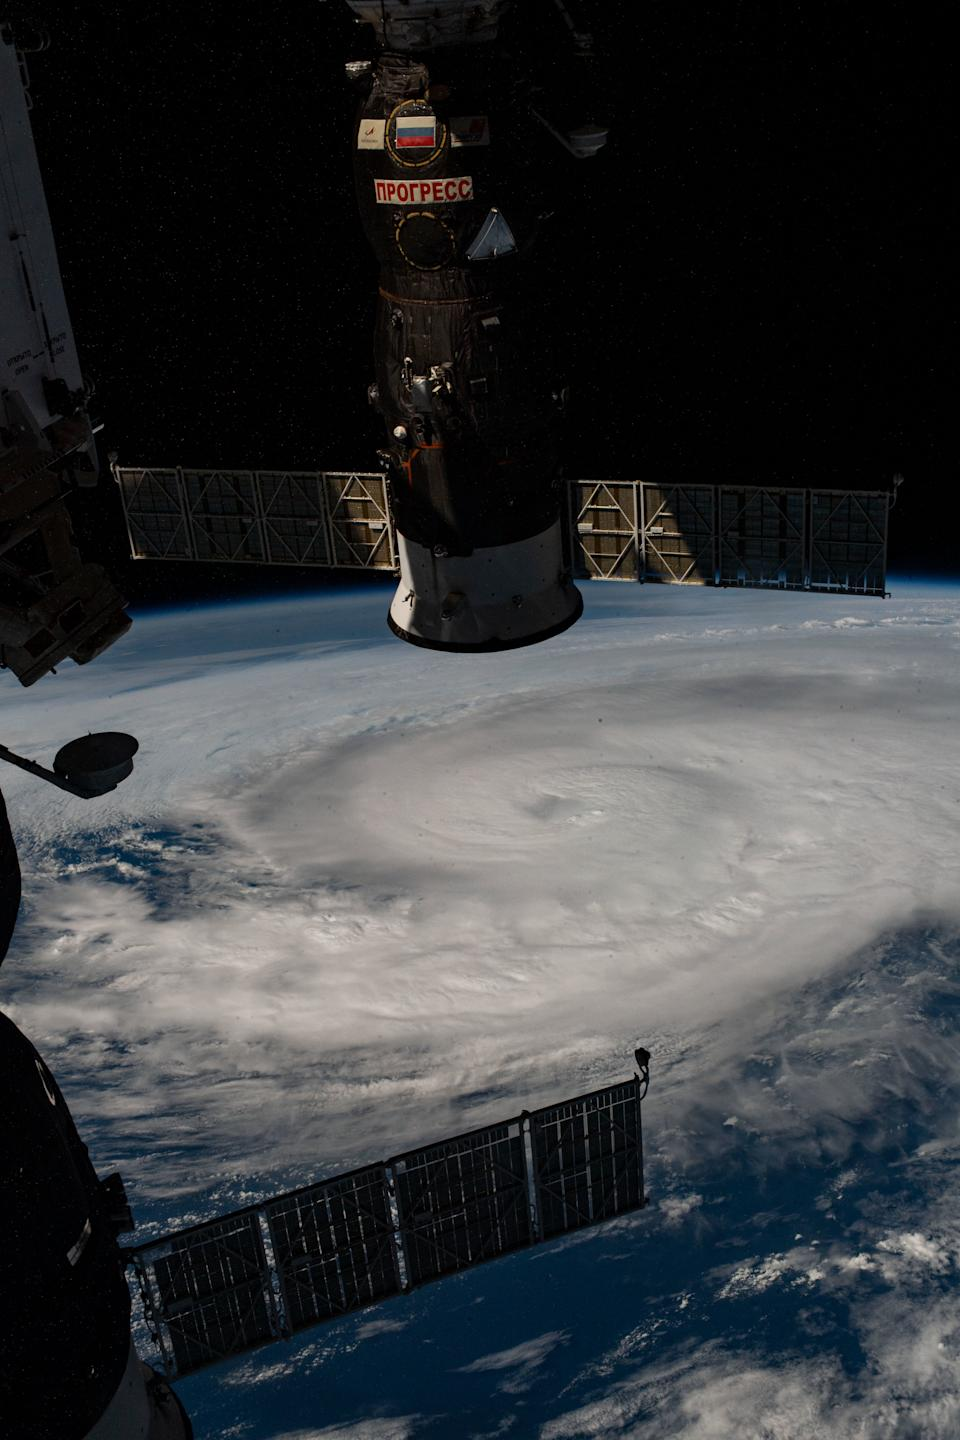 Hurricane Zeta churns in the Gulf of Mexico in this view captured from the International Space Station on Wednesday (Oct. 28), as the Category 2 storm approached Louisiana. In the upper foreground of the image is Russia's Progress 76 cargo resupply spacecraft, which is docked to the Russian Pirs module. At the bottom of the frame is Russia's Soyuz MS-17 spacecraft, which brought three crew members to the space station on Oct. 14.